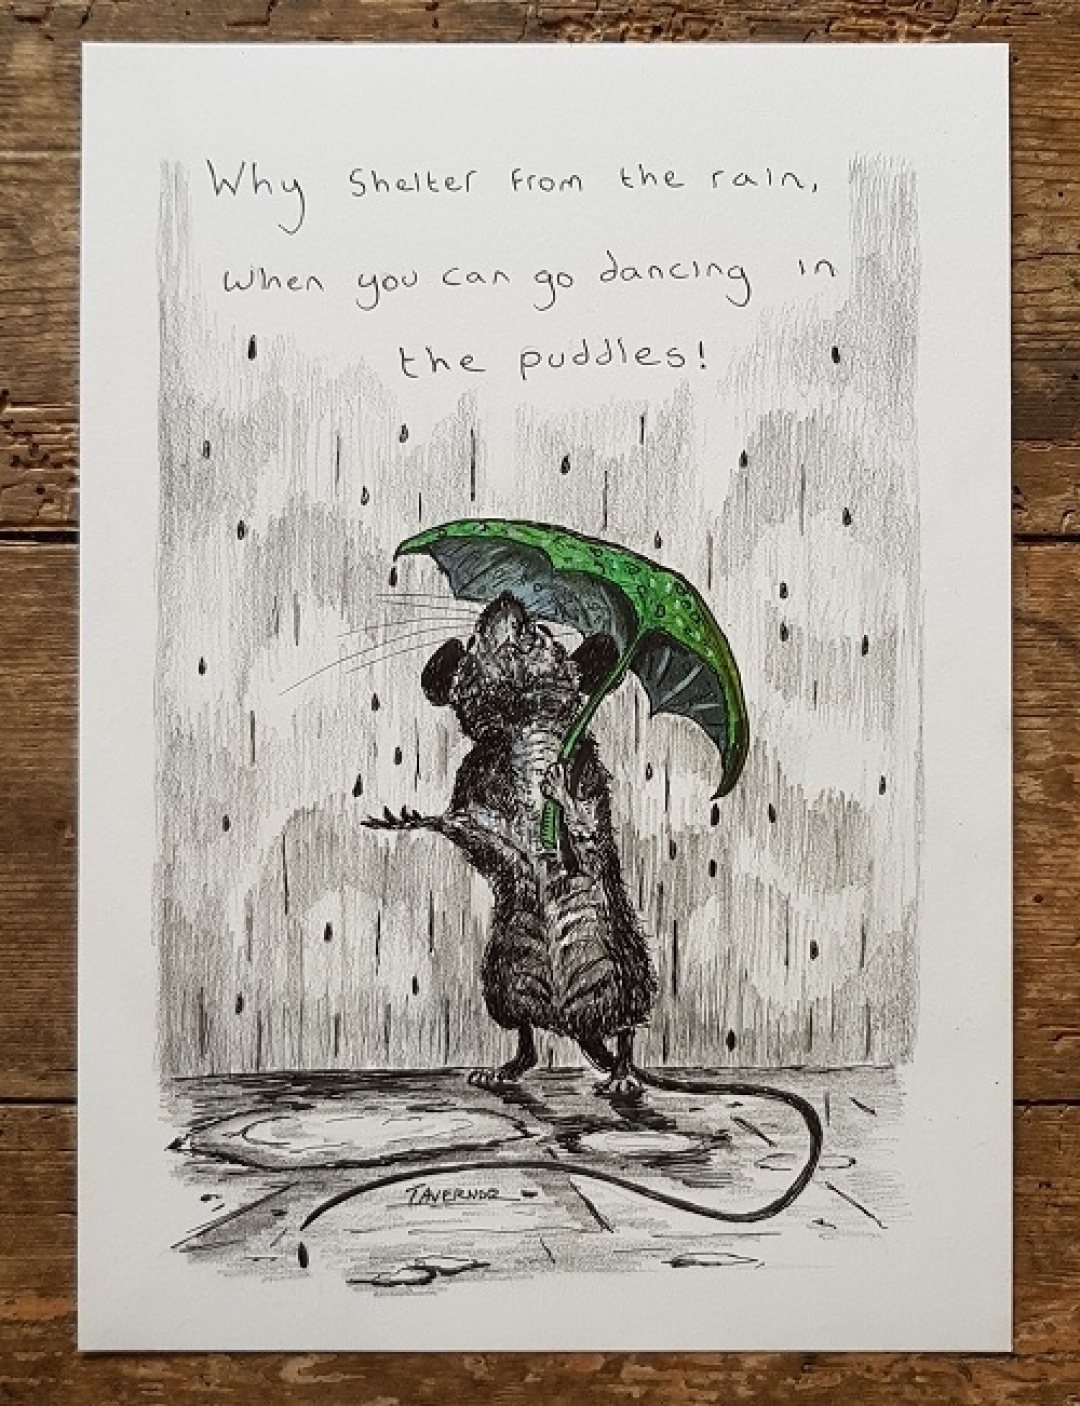 Dancing in the puddles Paul Tavernor Art